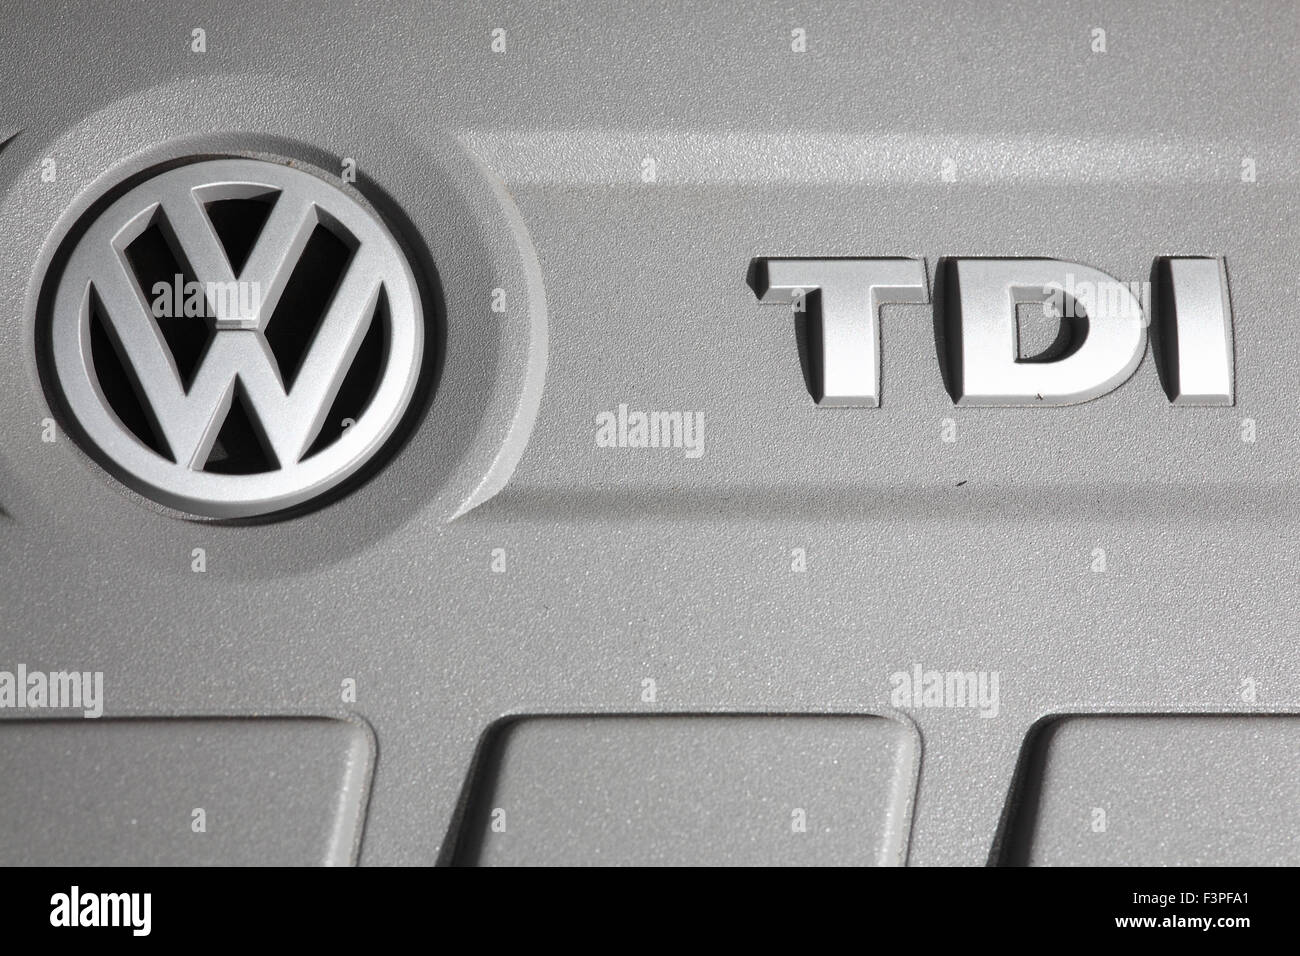 VW Golf engine cover - Stock Image